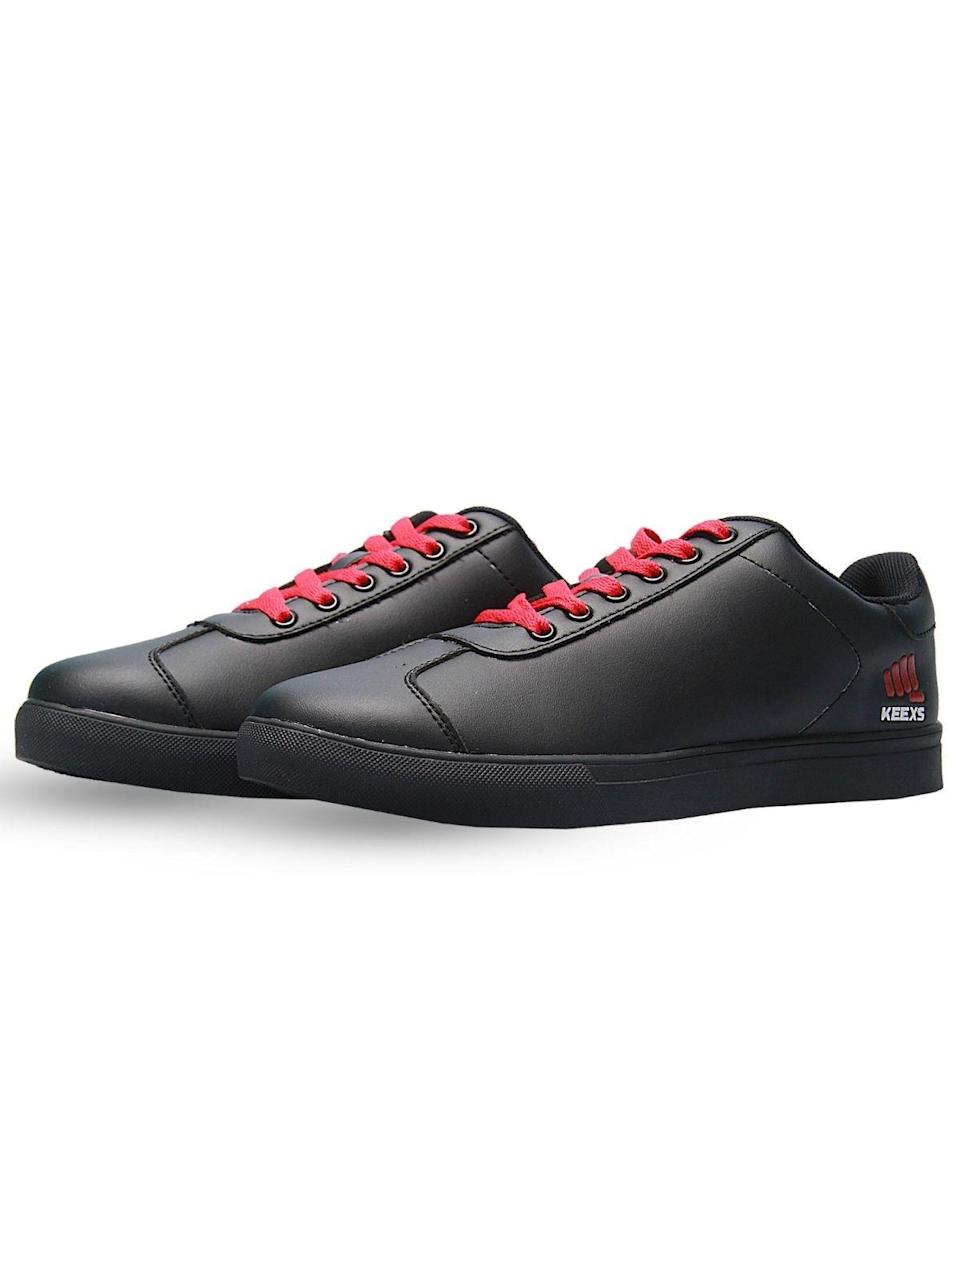 """<p><strong>classic</strong></p><p>keexs.com</p><p><strong>$99.00</strong></p><p><a href=""""https://keexs.com/us/product/keexs-black-pride-v3-0-classic-unisex-sneakers/"""" rel=""""nofollow noopener"""" target=""""_blank"""" data-ylk=""""slk:Shop Now"""" class=""""link rapid-noclick-resp"""">Shop Now</a></p><p>Keex's African-inspired range of sneakers are all about celebrating people, across cultures, borders, differences, skin color, and religion. The fact that they make some seriously cute designs is just a bonus.</p>"""